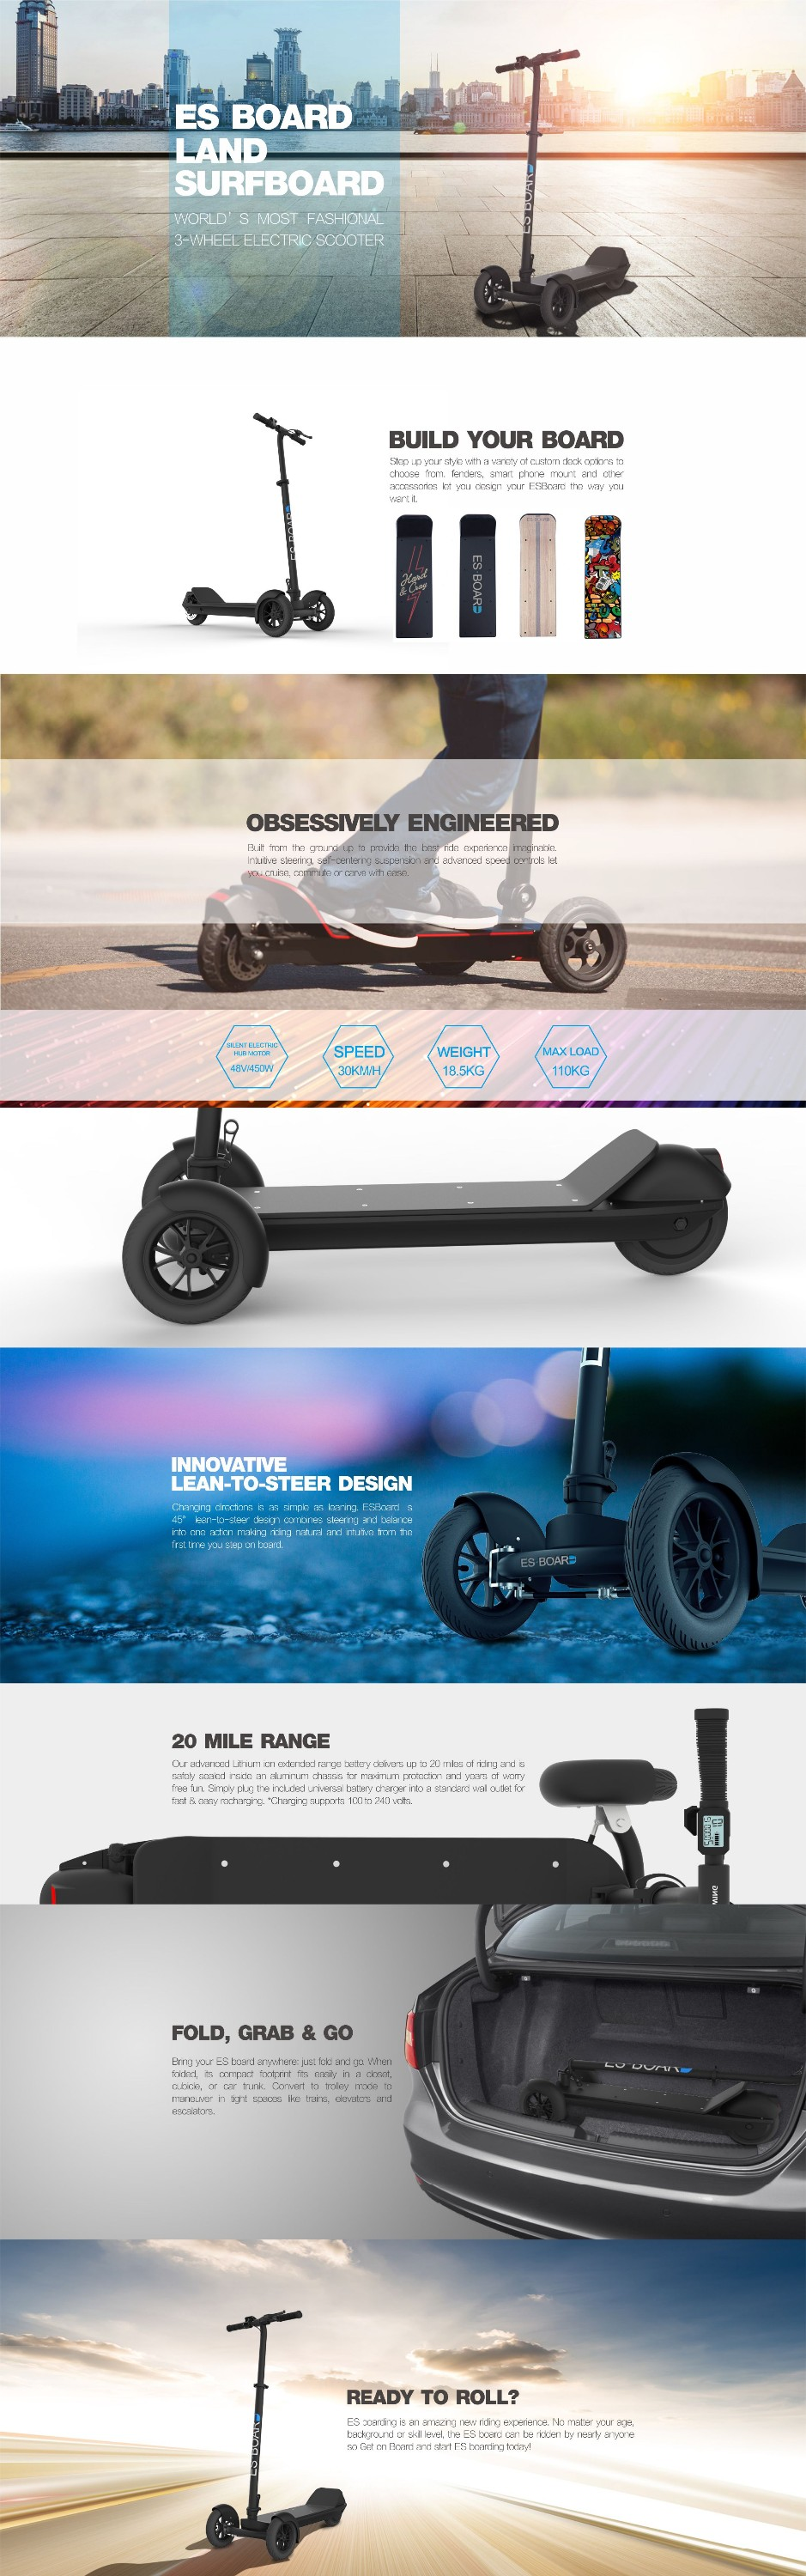 China 2017 new 3 wheel personal tracked vehicles electric skateboard mobility for sale